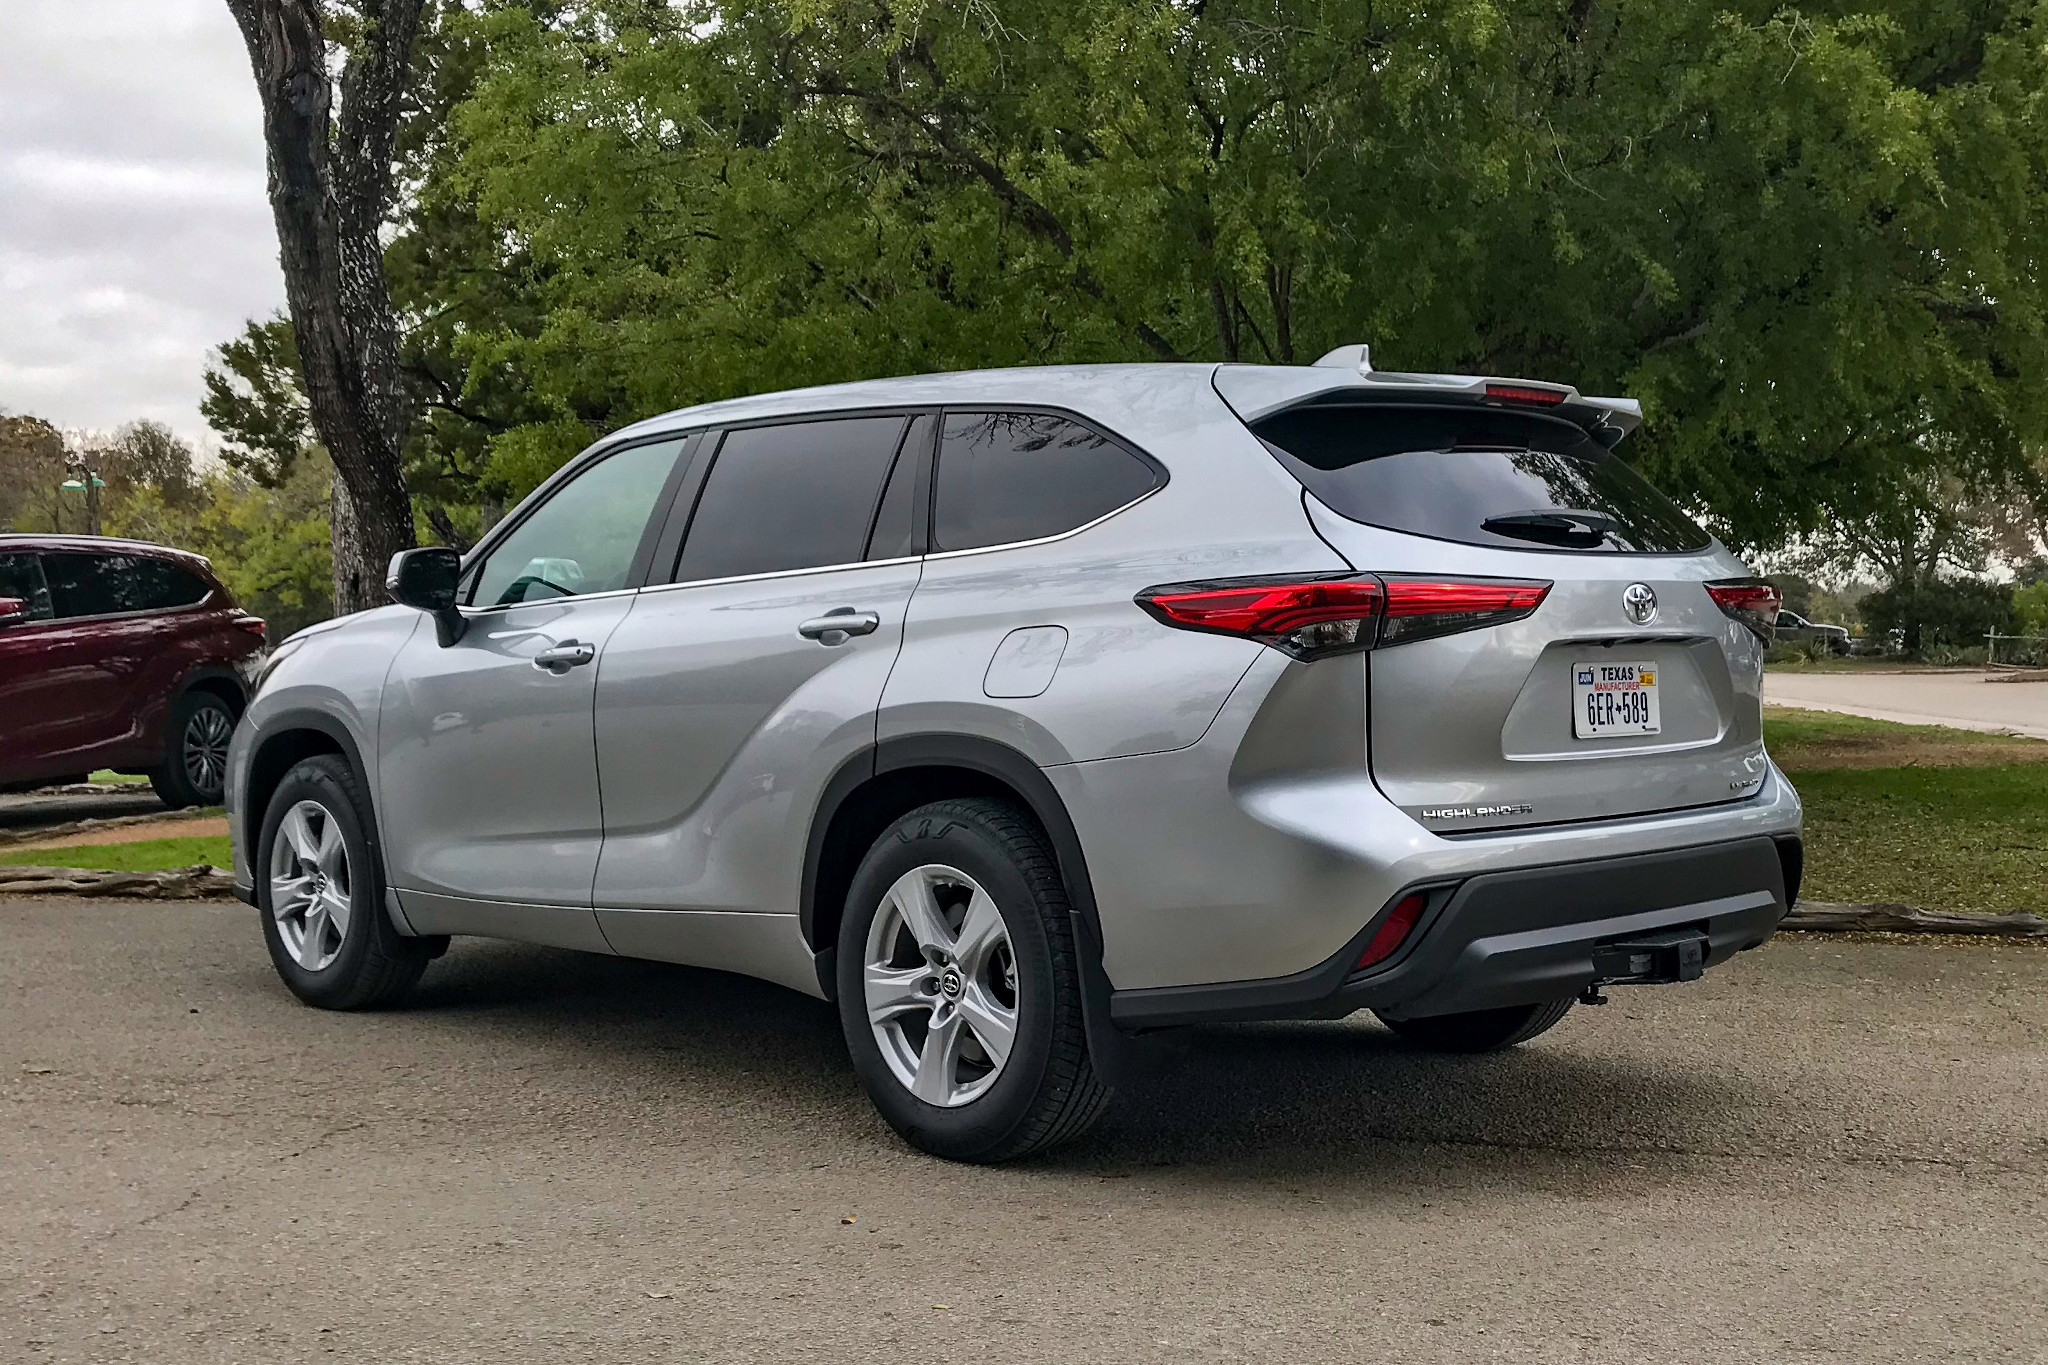 Top 5 Reviews and Videos of the Week: SUVs Dominate